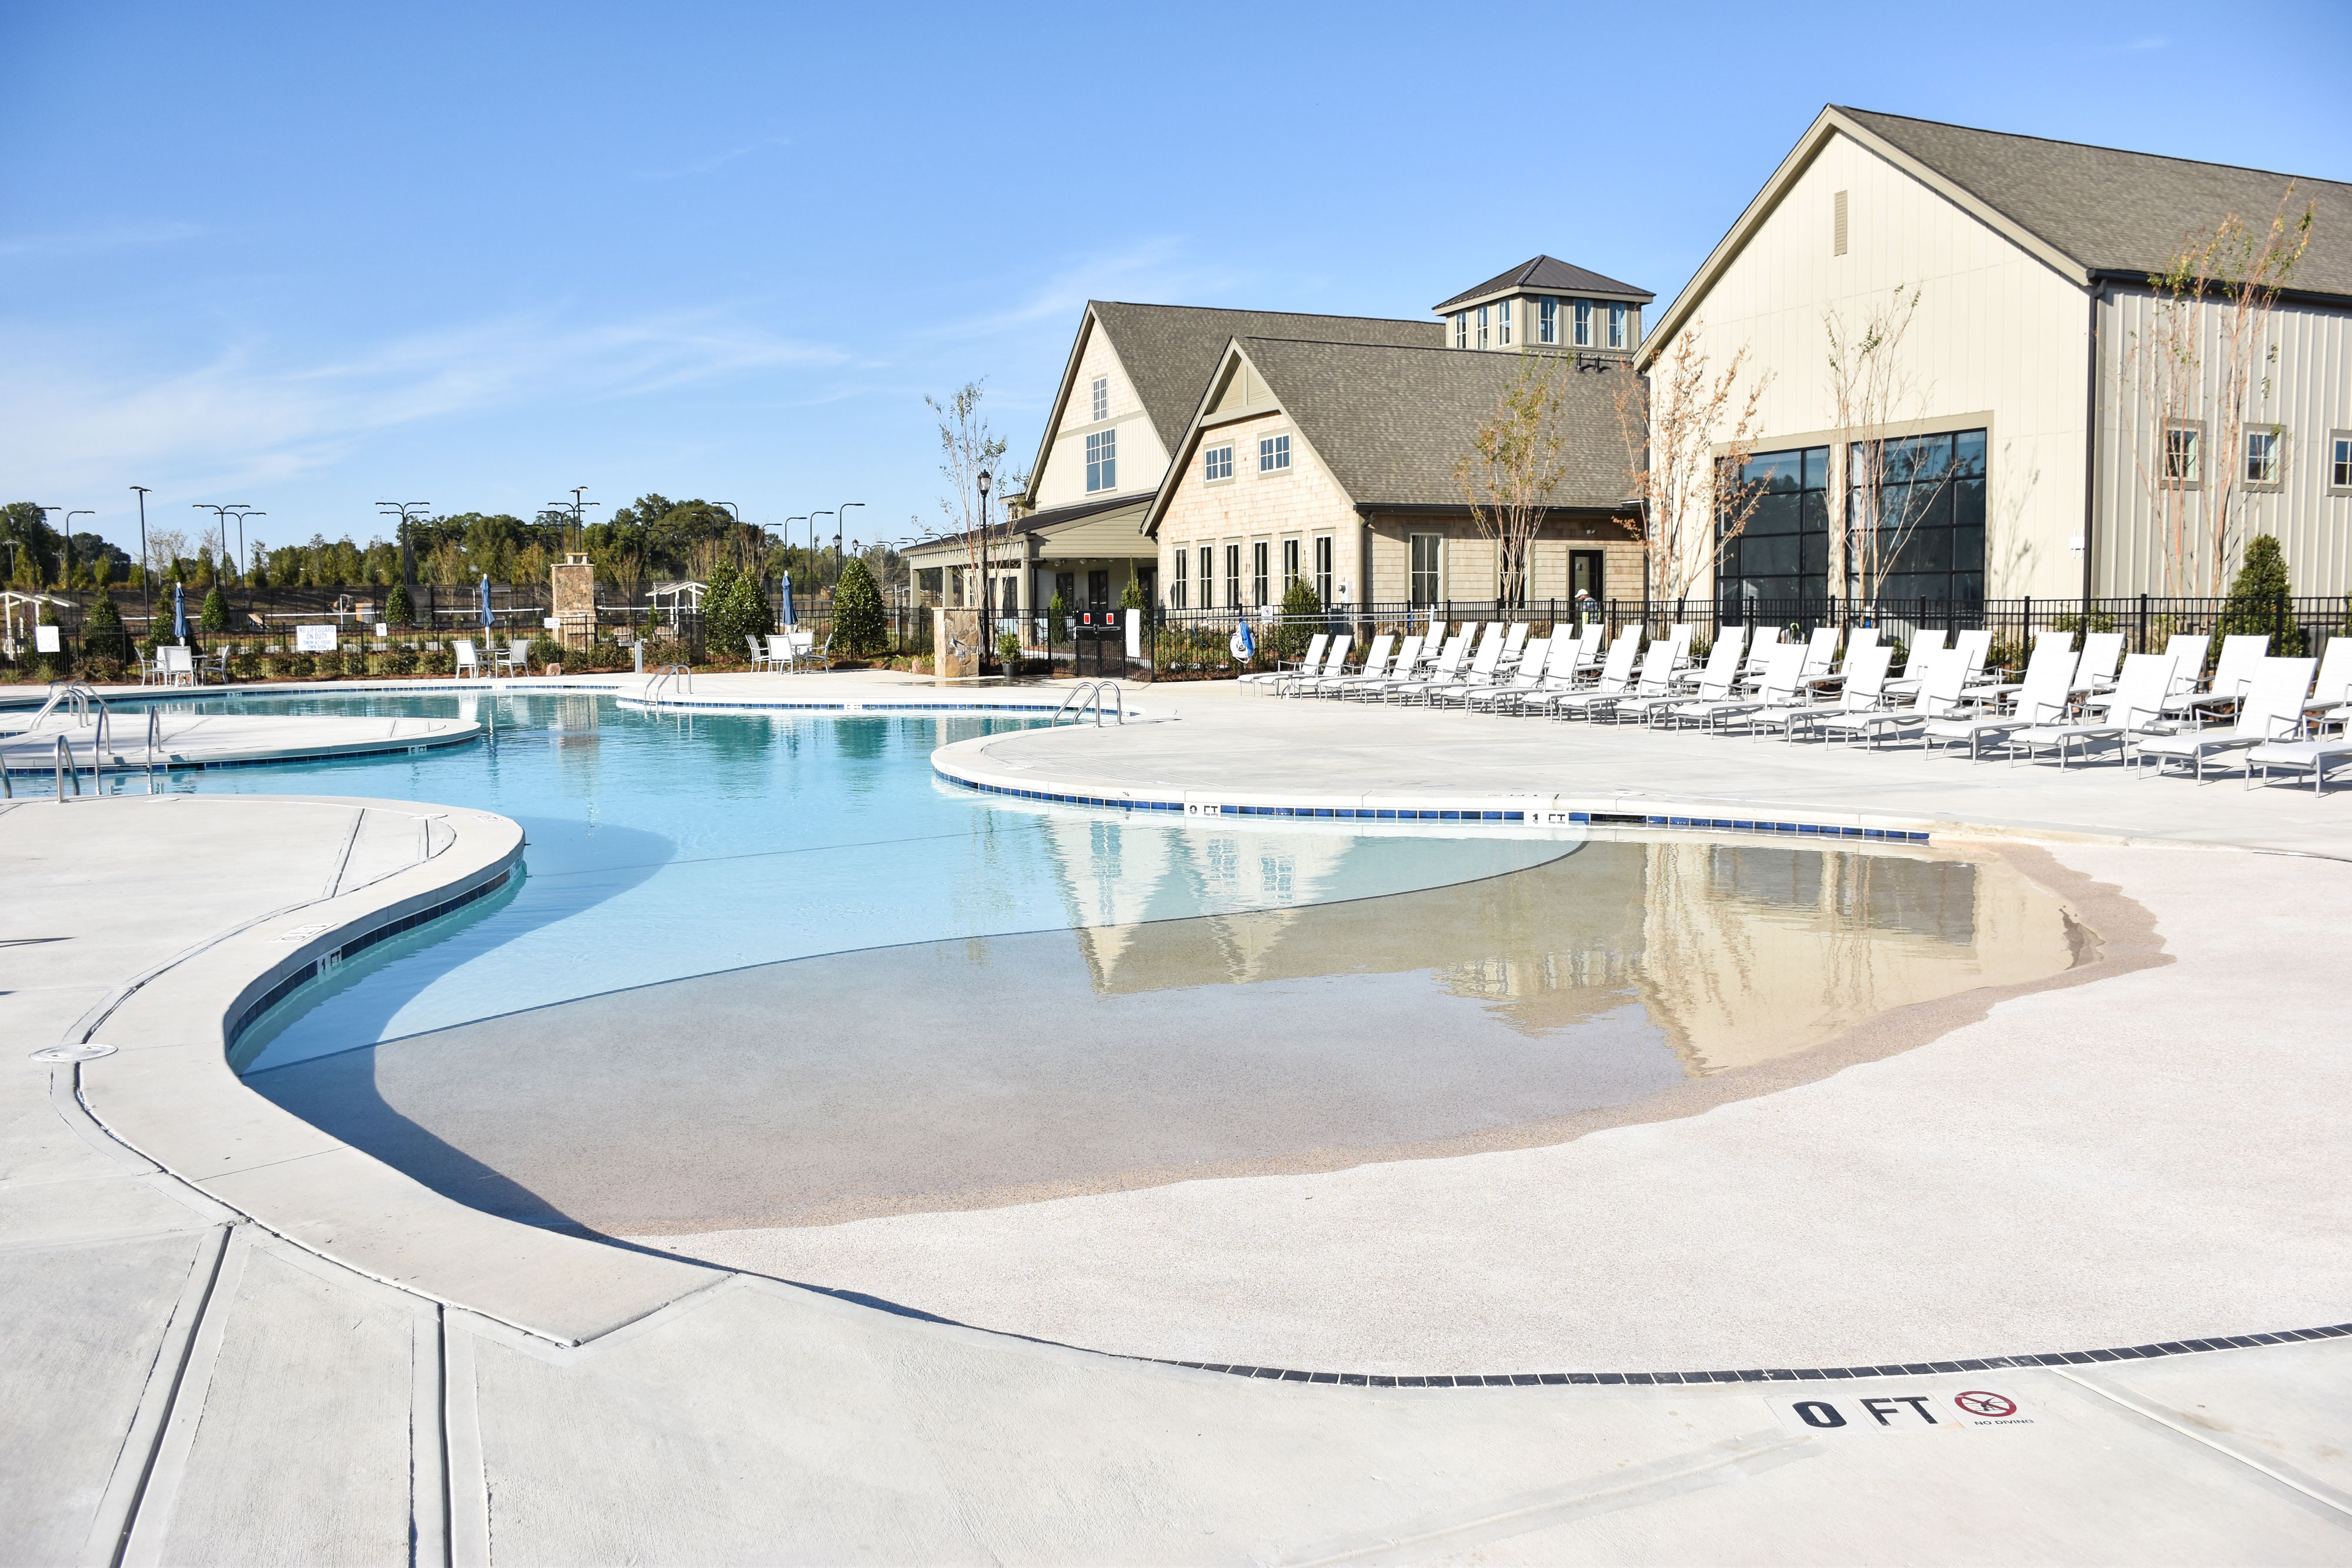 Commercial Pool Spa Conner Construction Corp Cornelius Nc